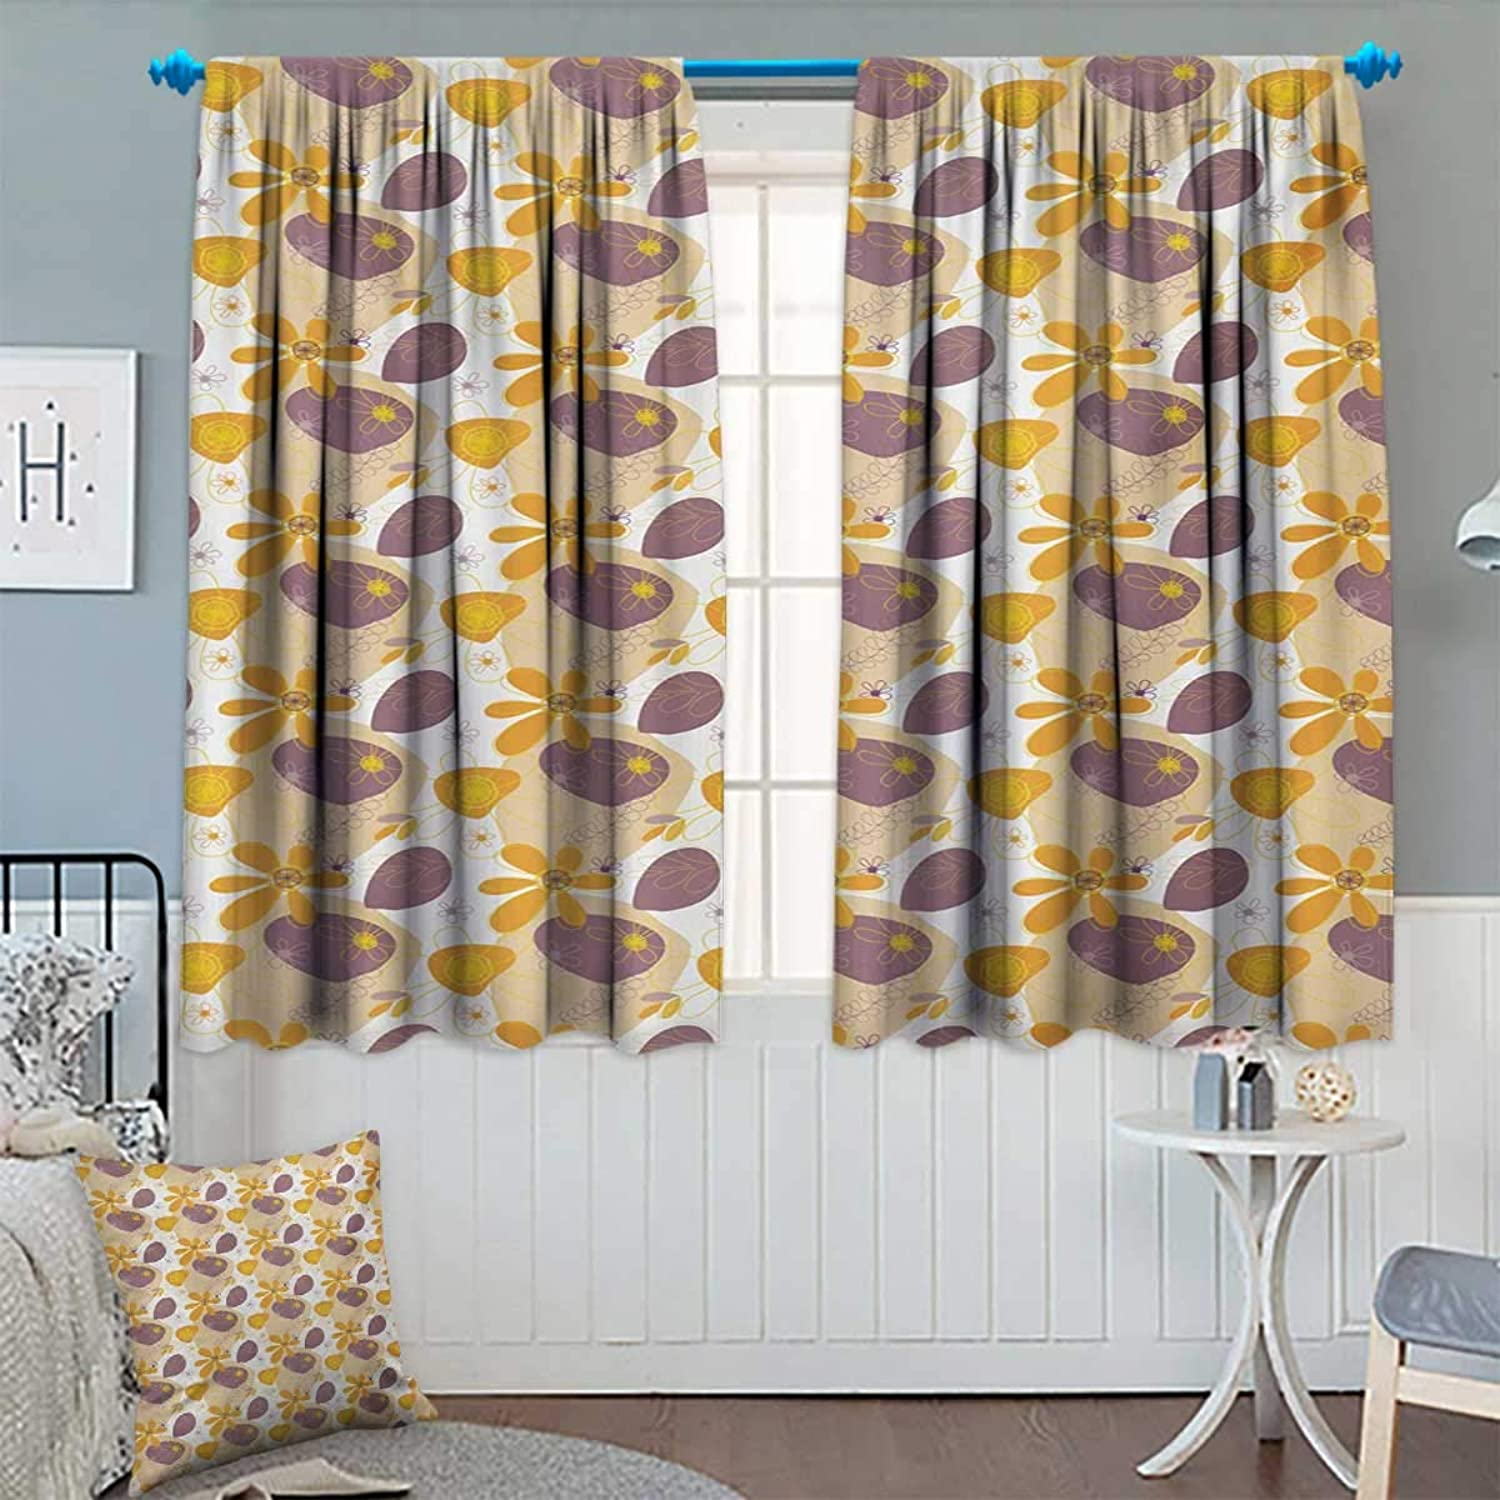 Chaneyhouse Doodle Waterproof Window Curtain Sketch Floral Illustration with Warm colors Flowering Branches of Nature Blackout Draperies for Bedroom 55  W x 45  L orange Beige Purple